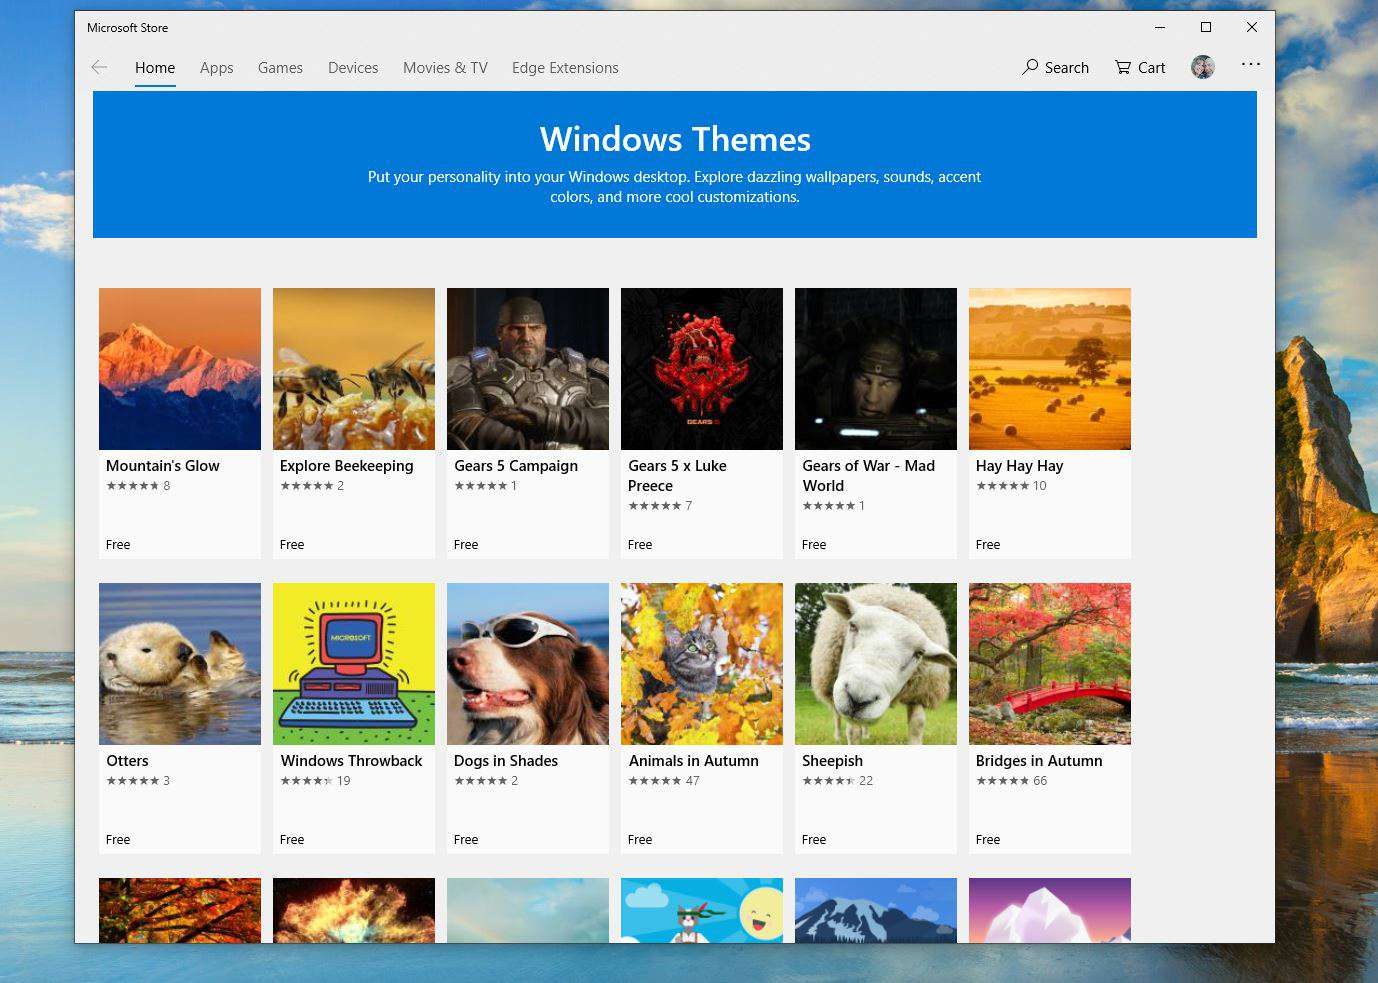 Windows Themes in the Microsoft Store